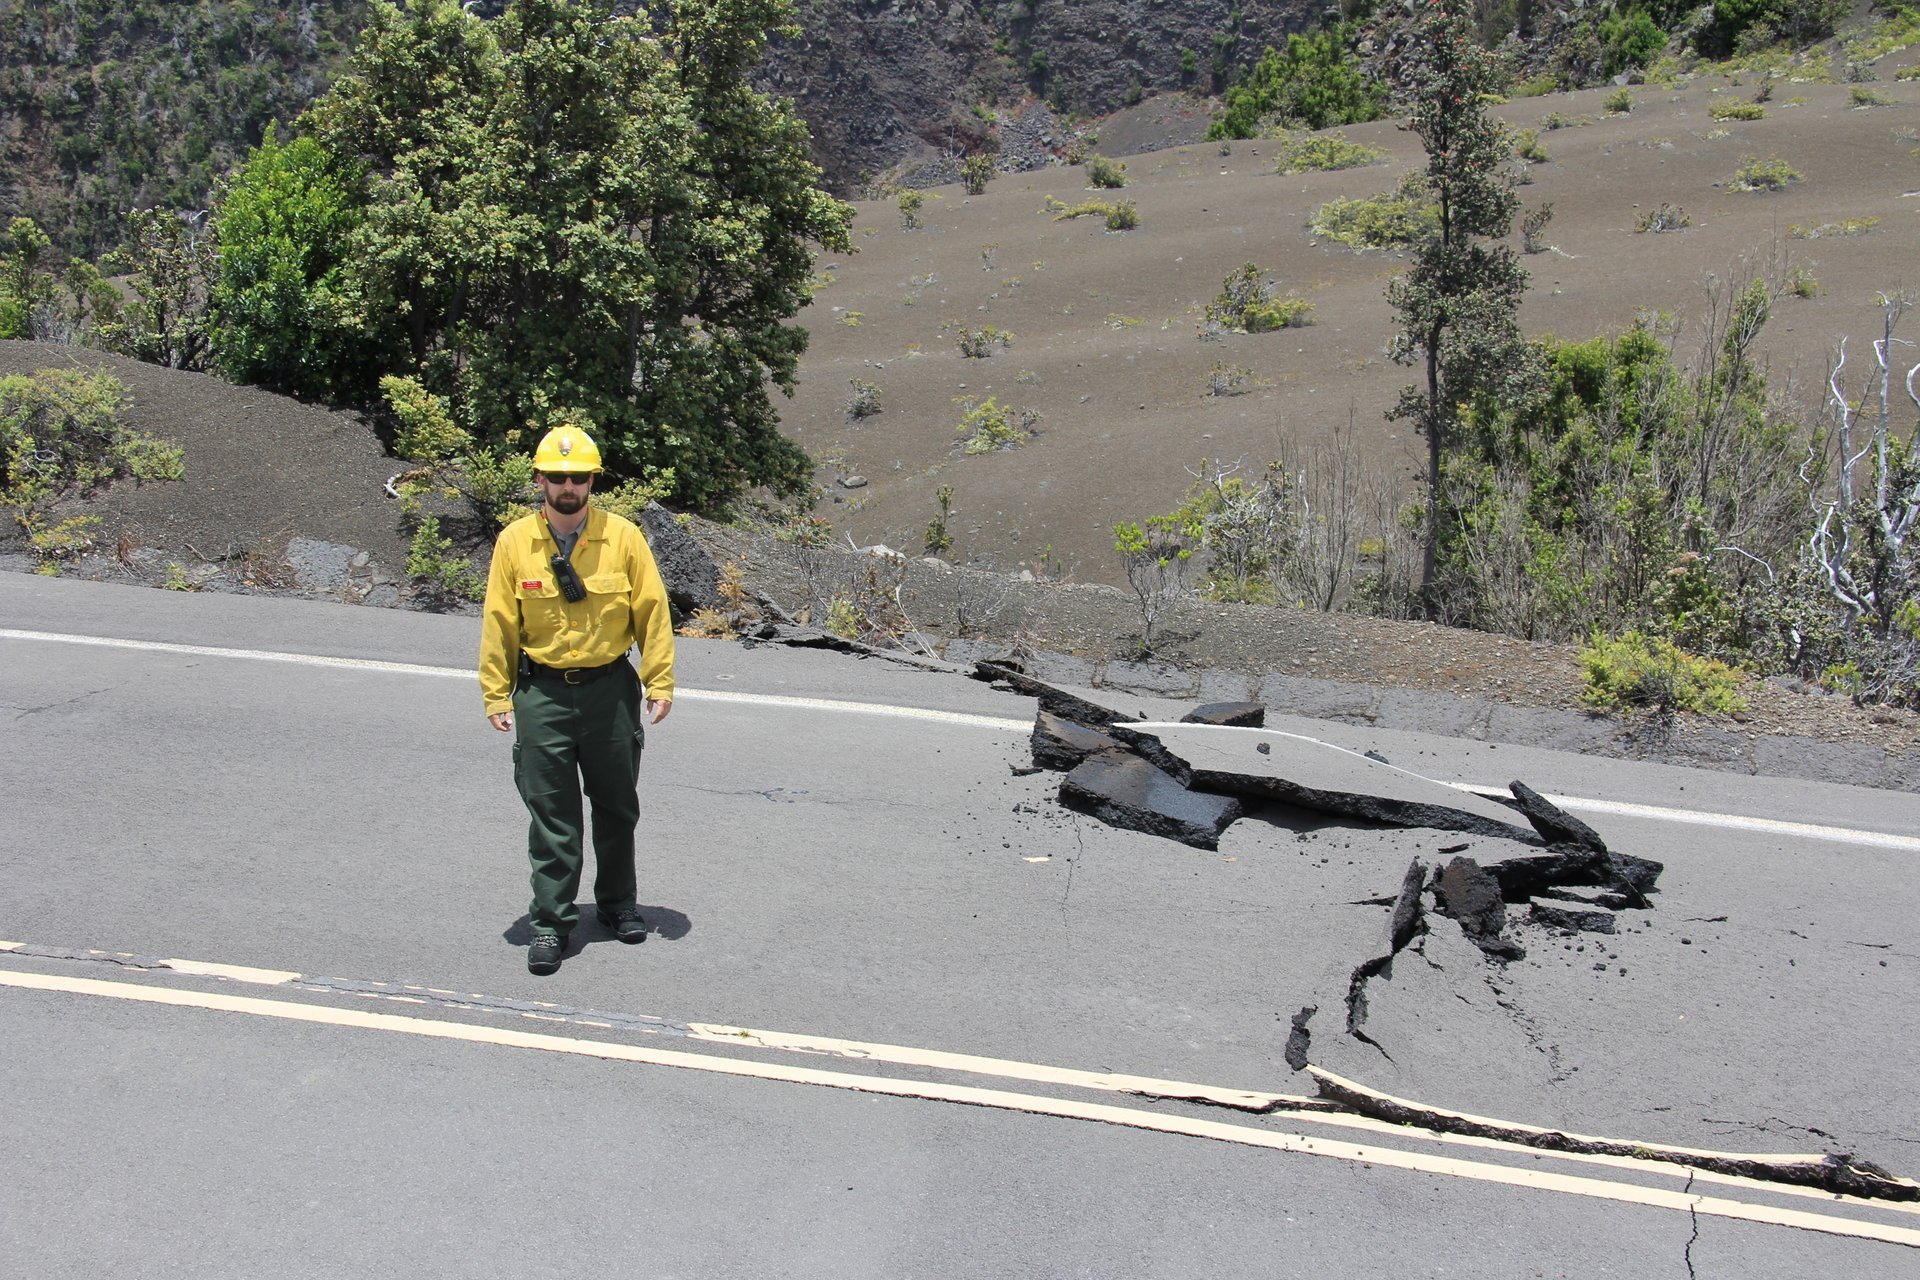 Damage on Crater Rim Drive near Keanakakoi 2020